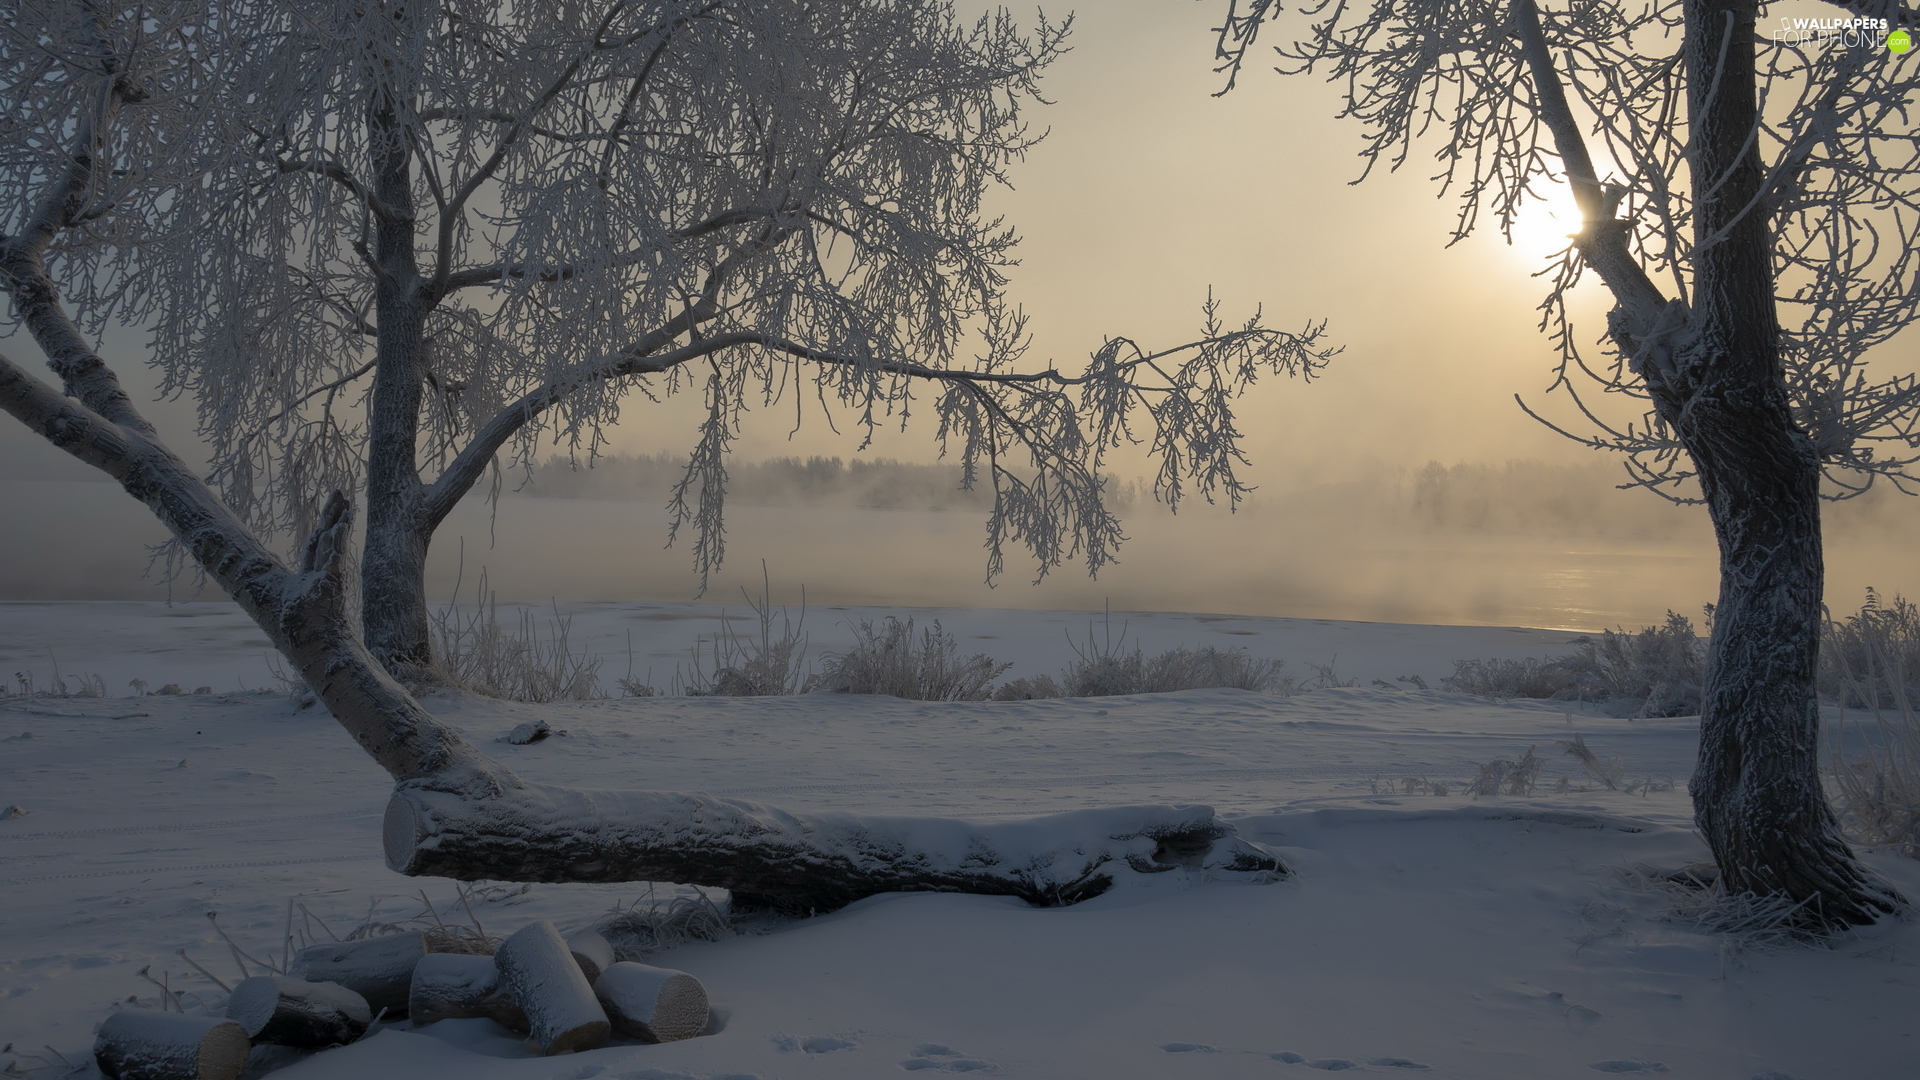 River, frosty, log, trees, laying, Fog, winter, viewes